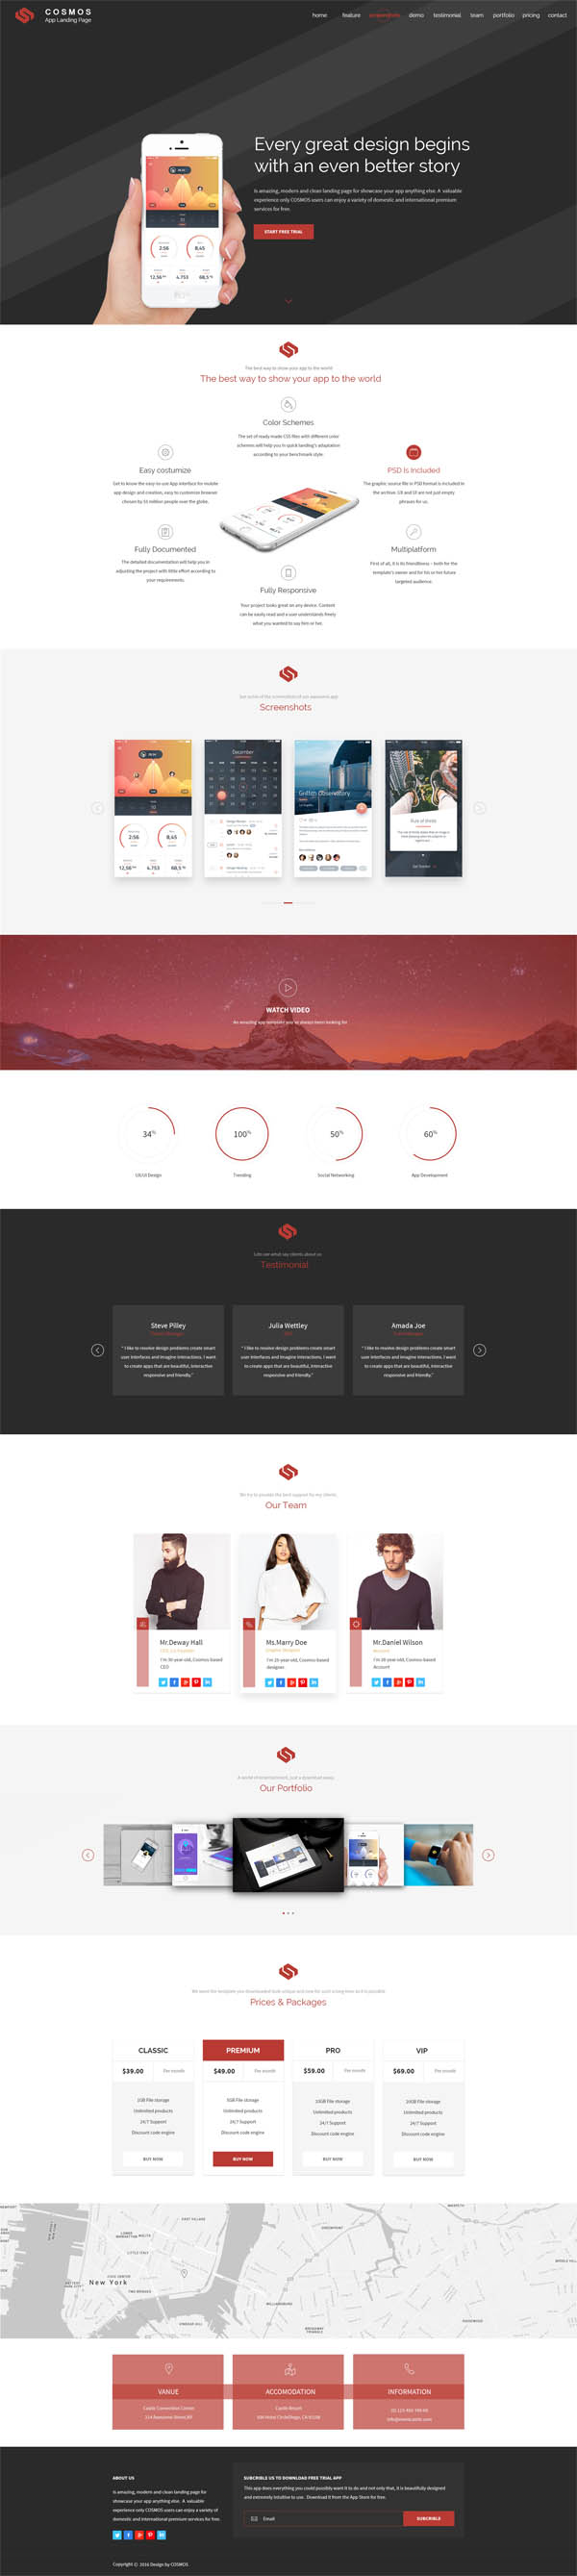 wordpress responsive theme design pdf